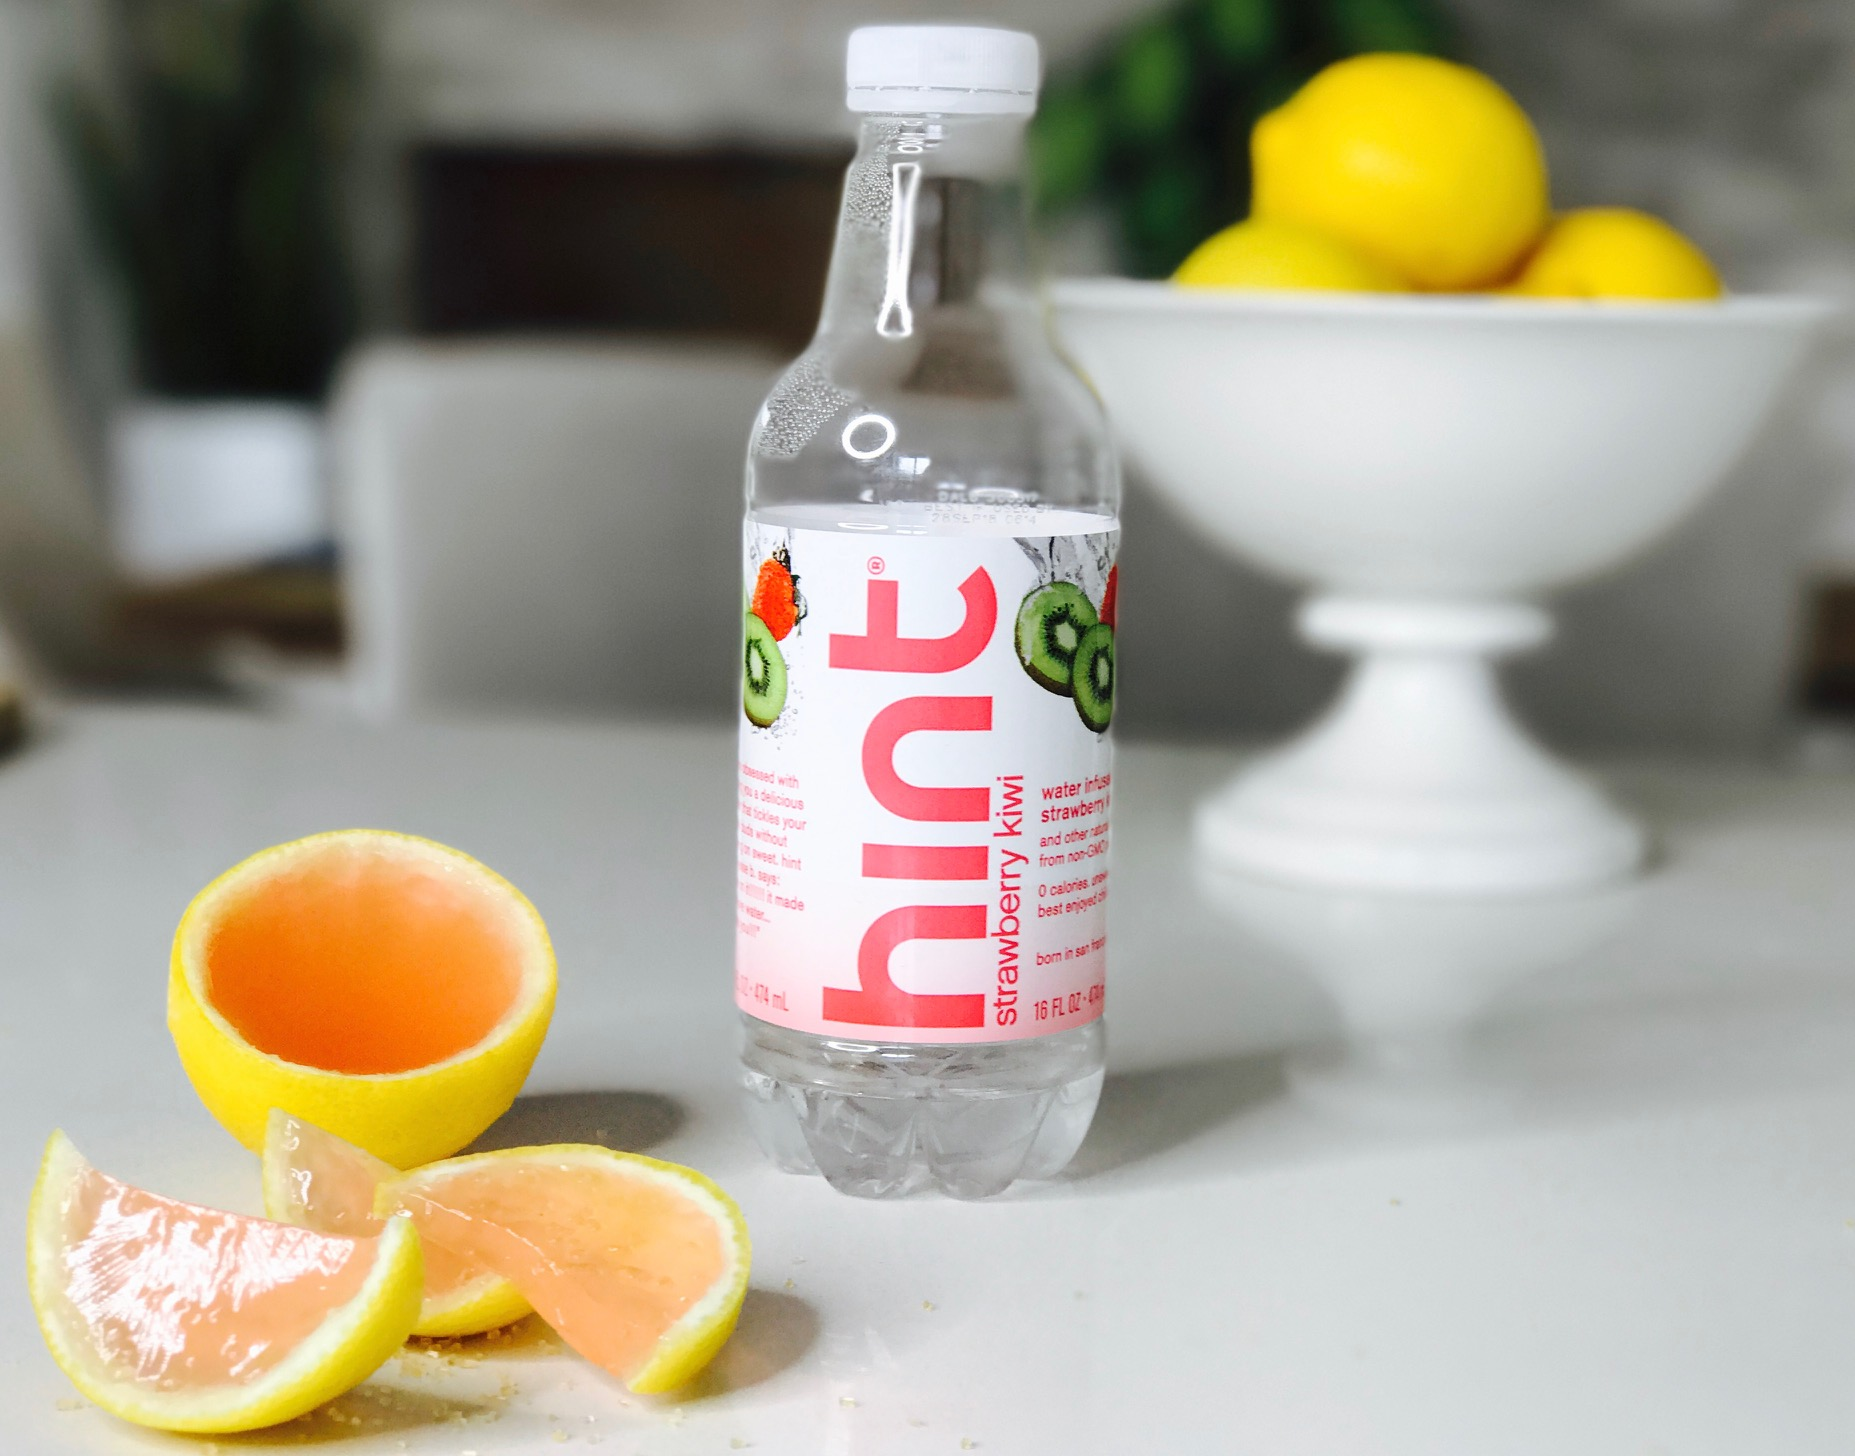 I love Hint water!  The strawberry kiwi flavor is my favorite!